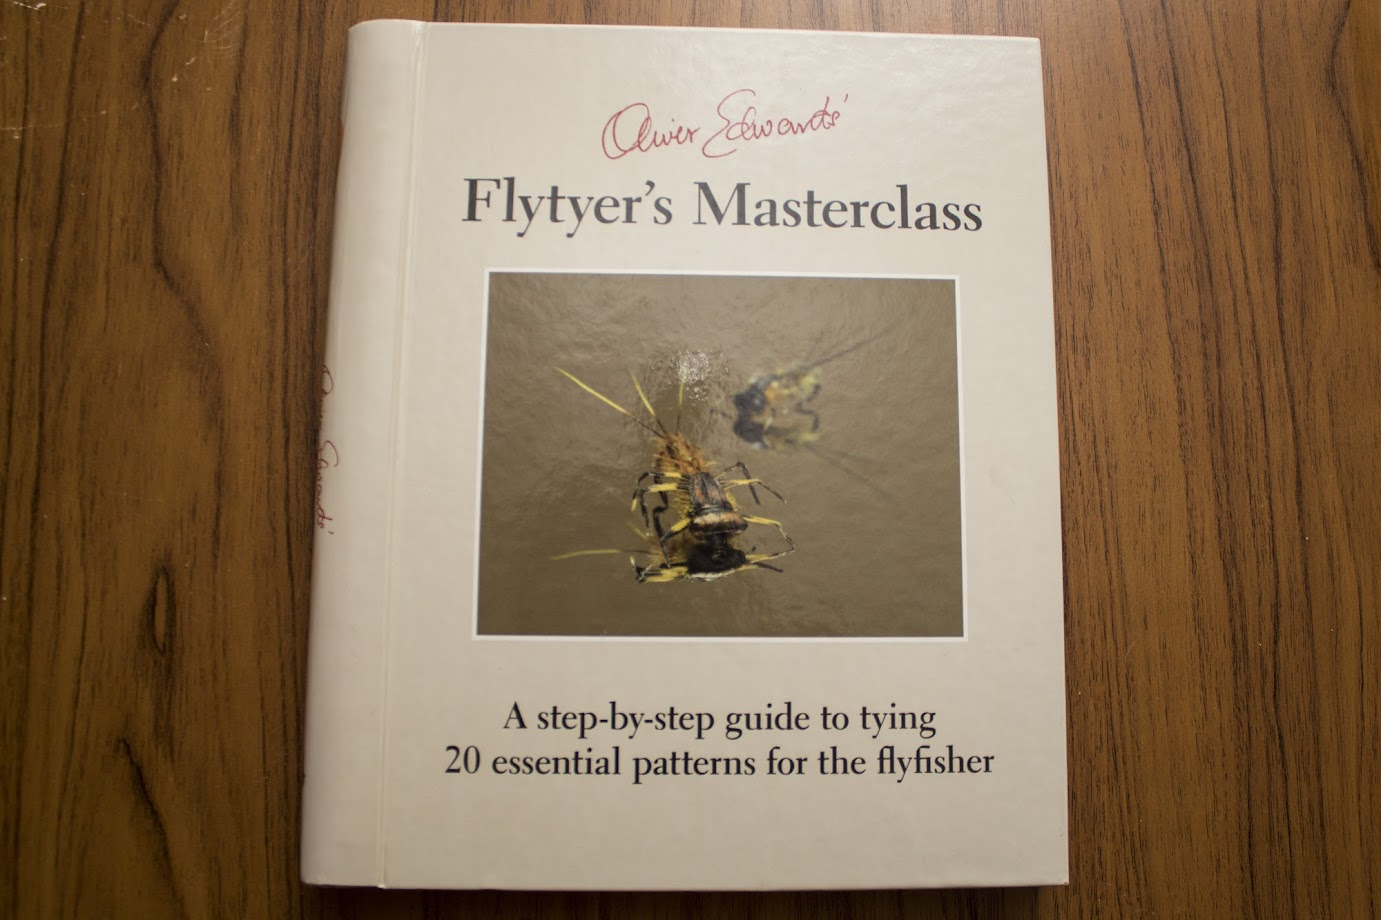 Flytyer's Masterclass - Oliver Edwards